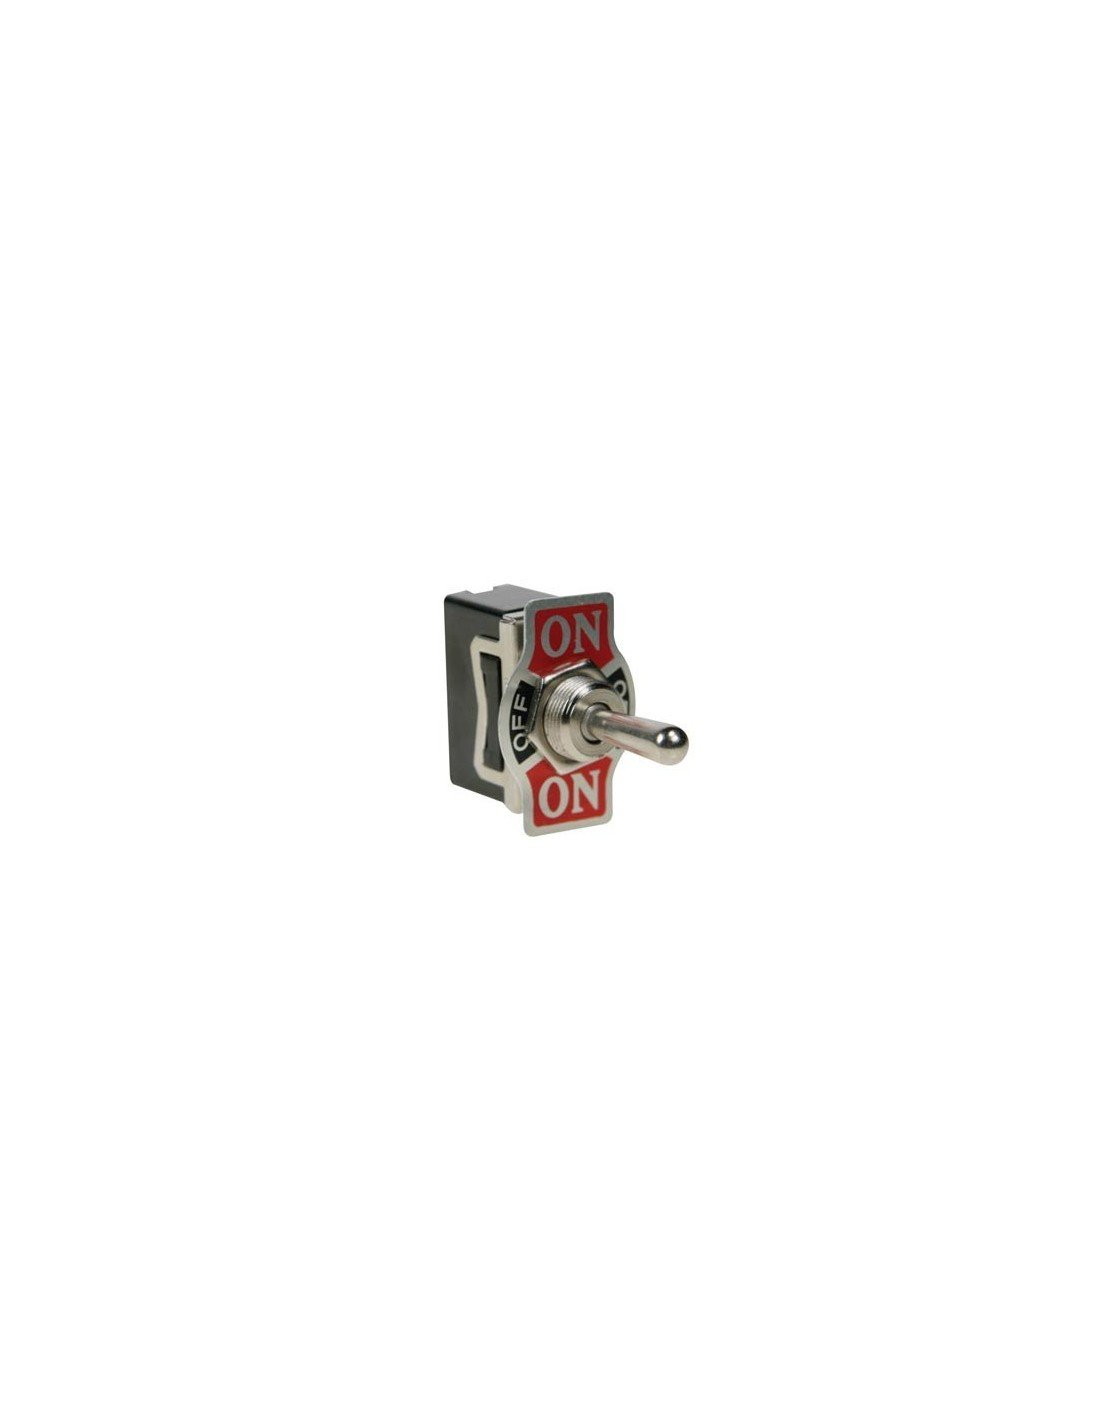 Perel 143201 SPDT Toggle Switch 1P, ON-OFF-ON, 10A/250V